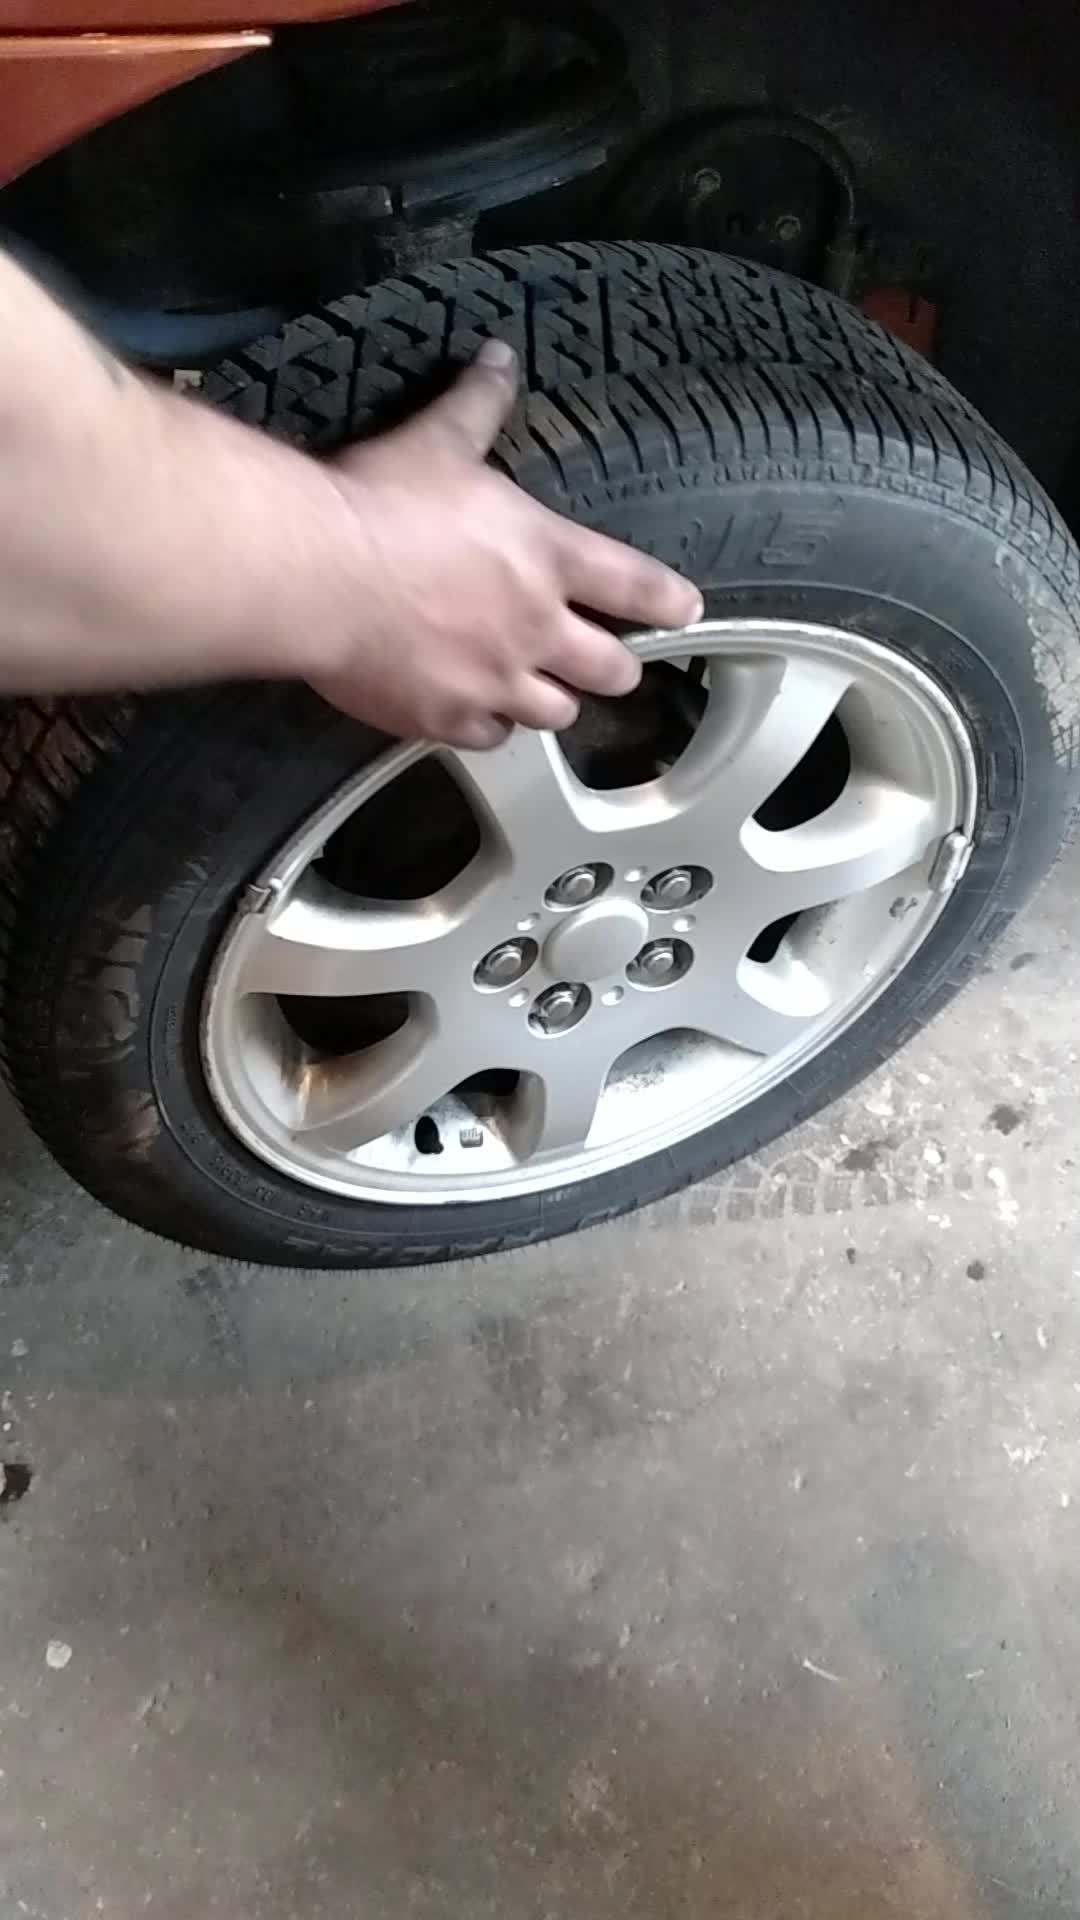 justrolledintotheshop, C/S States Car Making Grinding Noise GIFs